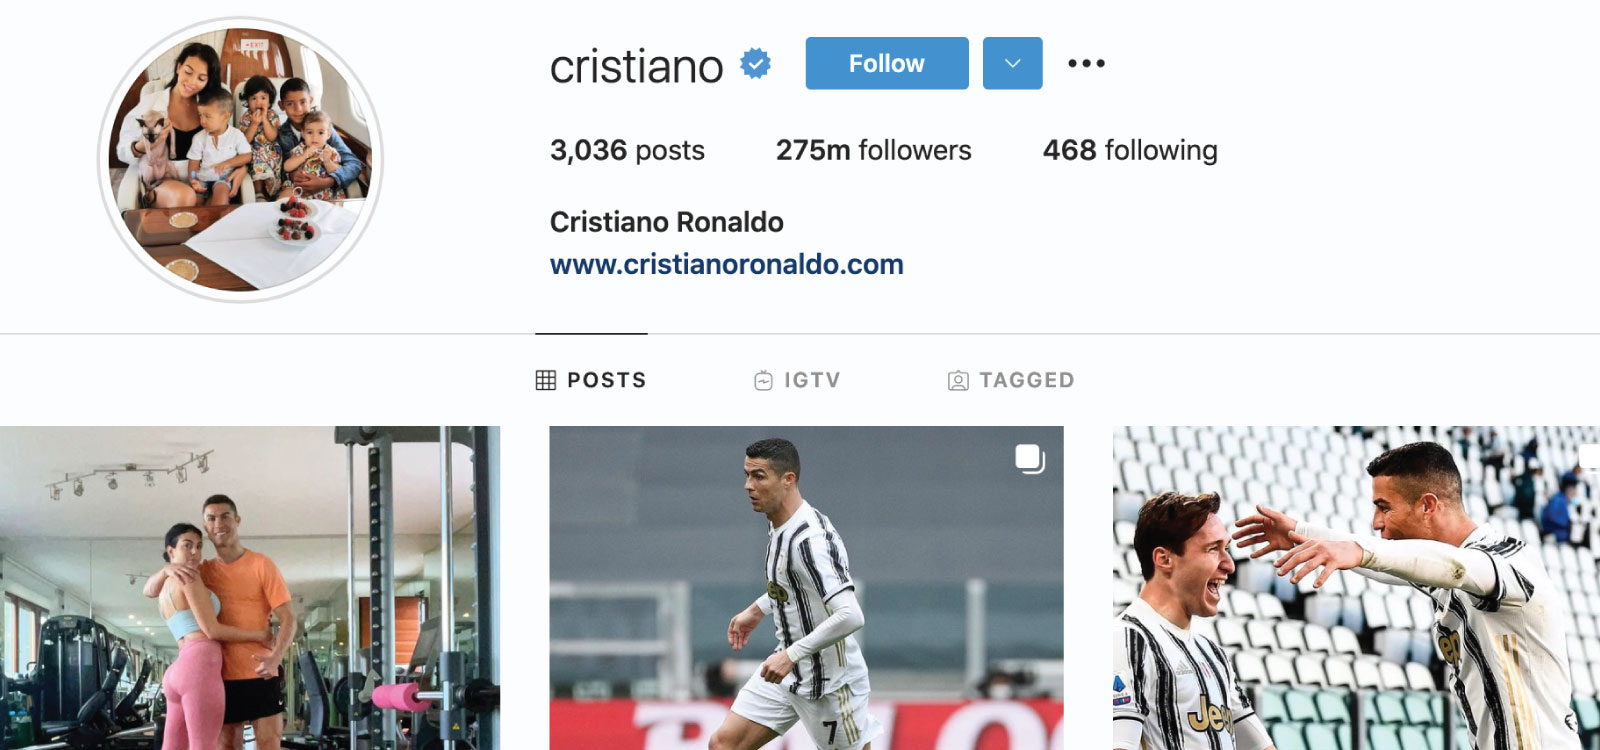 Instagram Statistics and Facts - @Cristiano